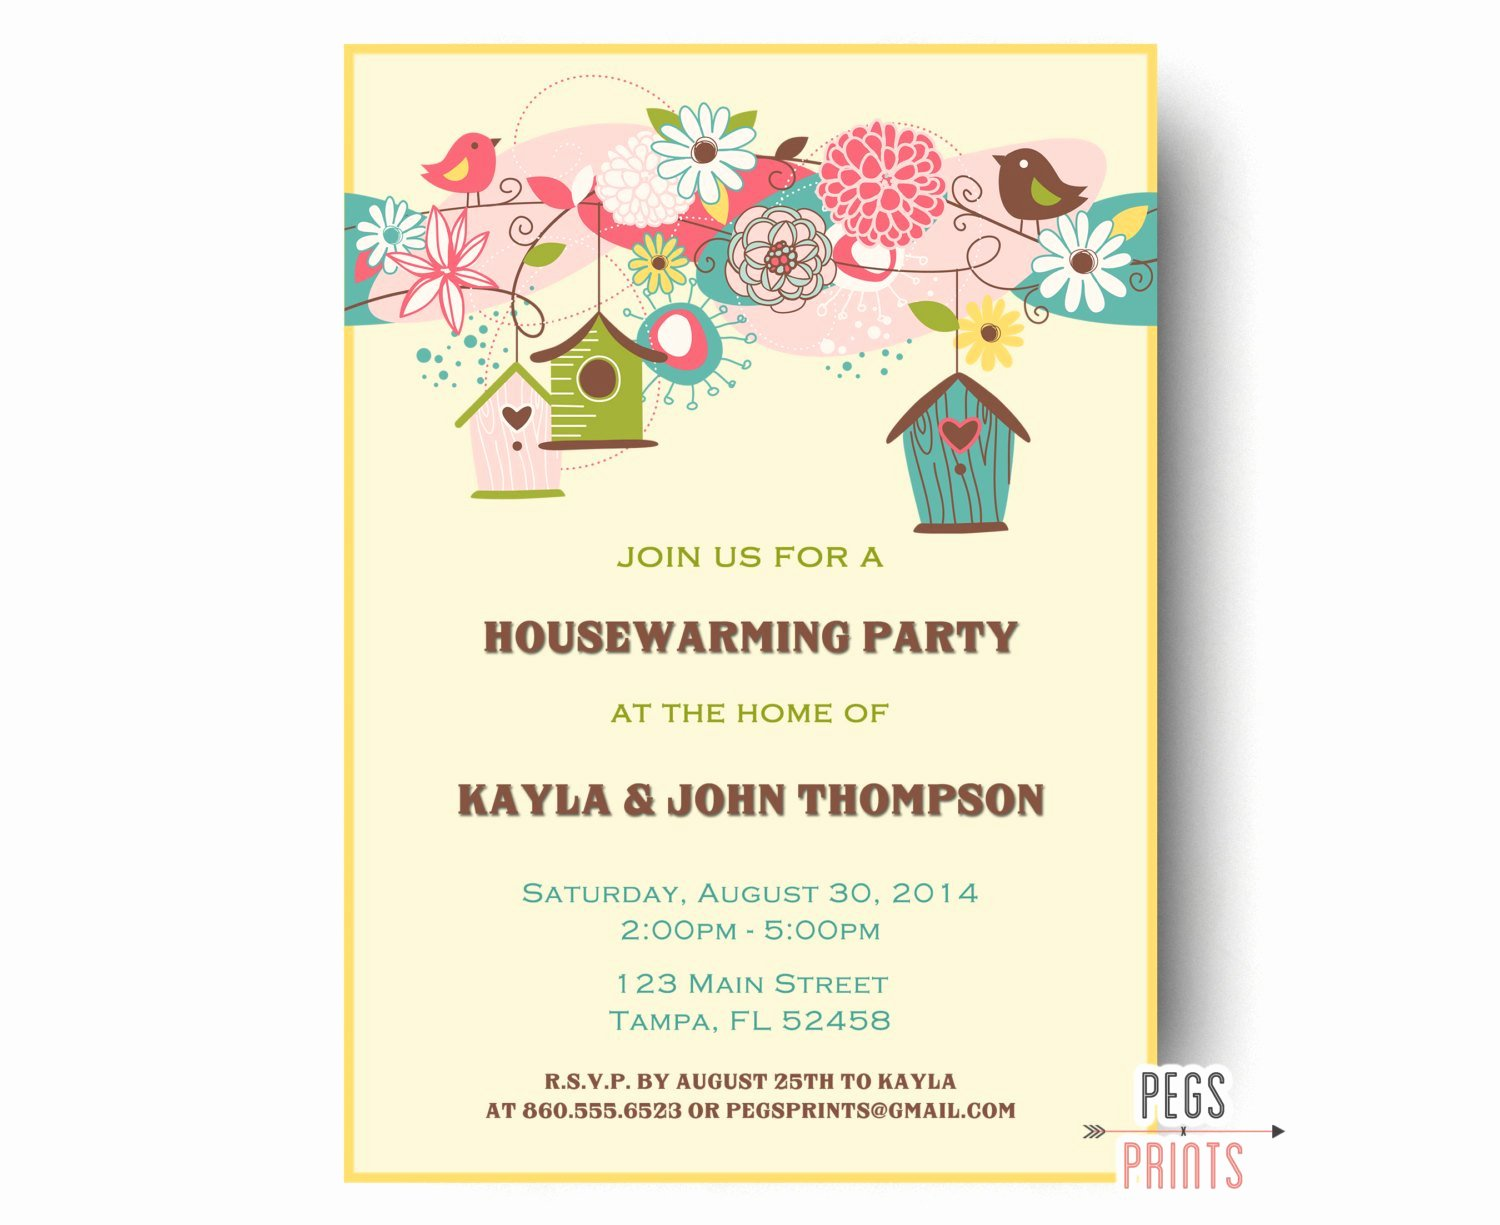 Housewarming Invitation Template Free Lovely Birdhouse Housewarming Party Invitation Bird Housewarming